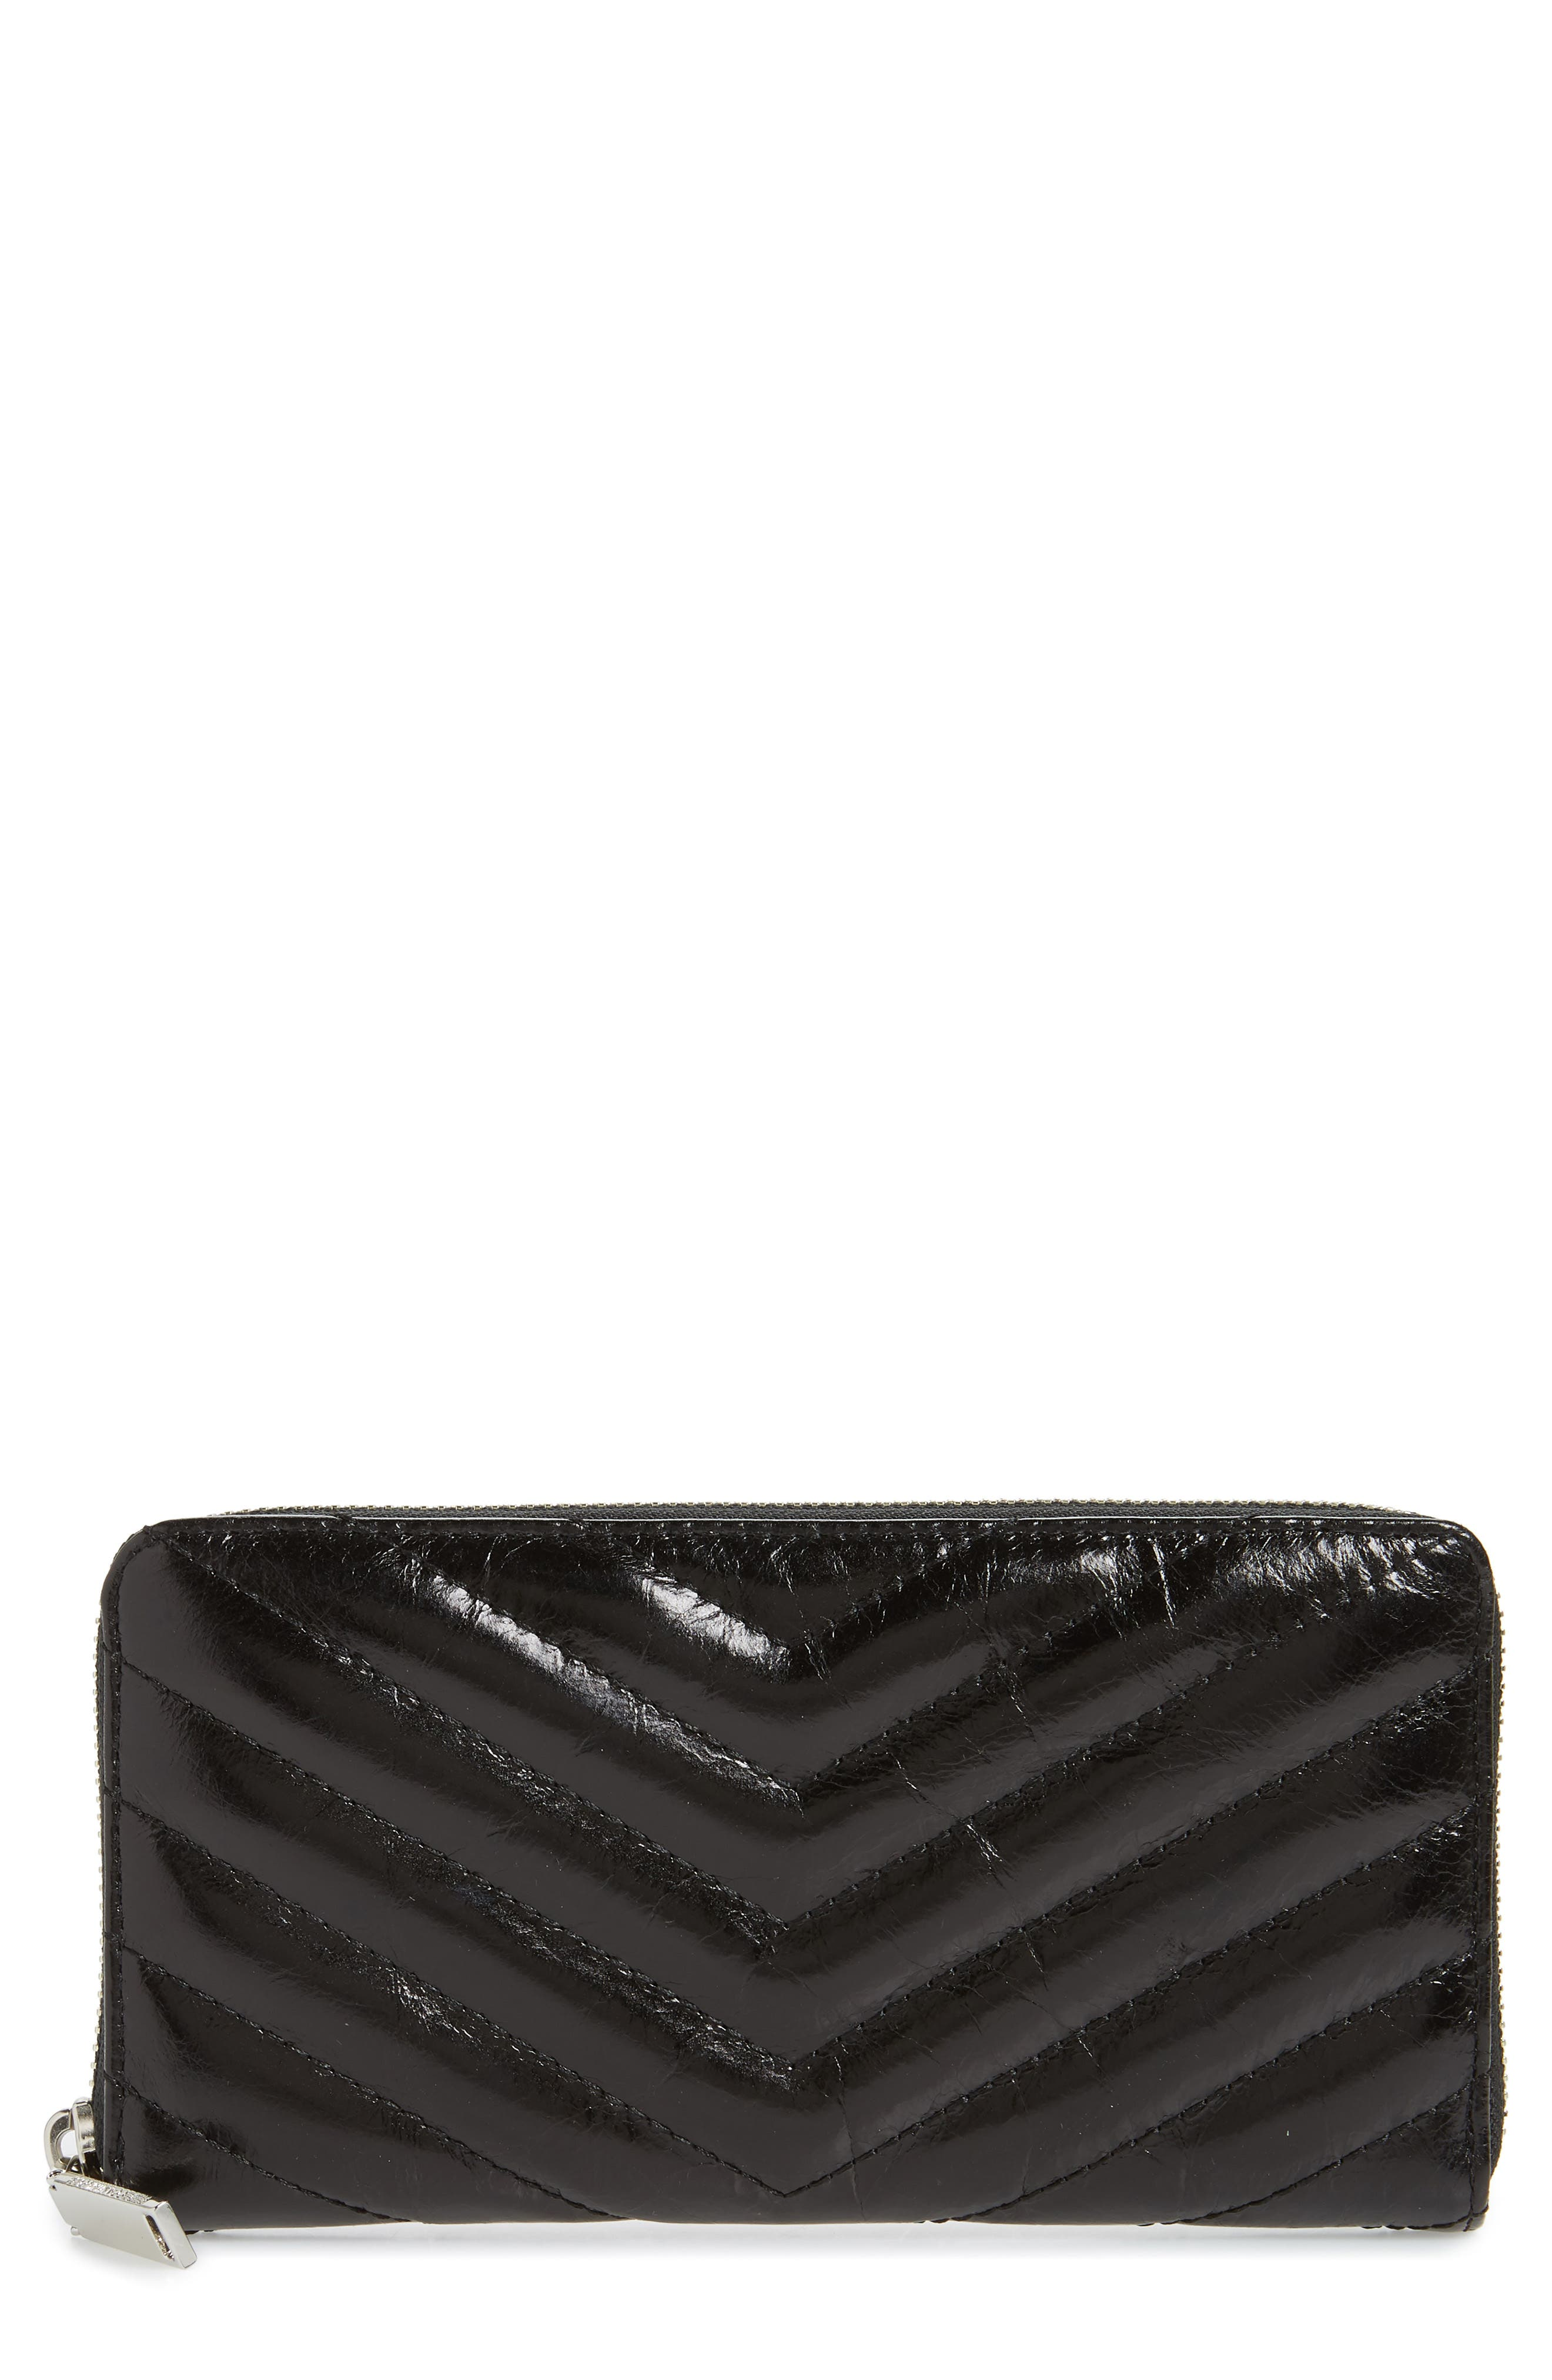 REBECCA MINKOFF, Quilted Wallet, Main thumbnail 1, color, BLACK